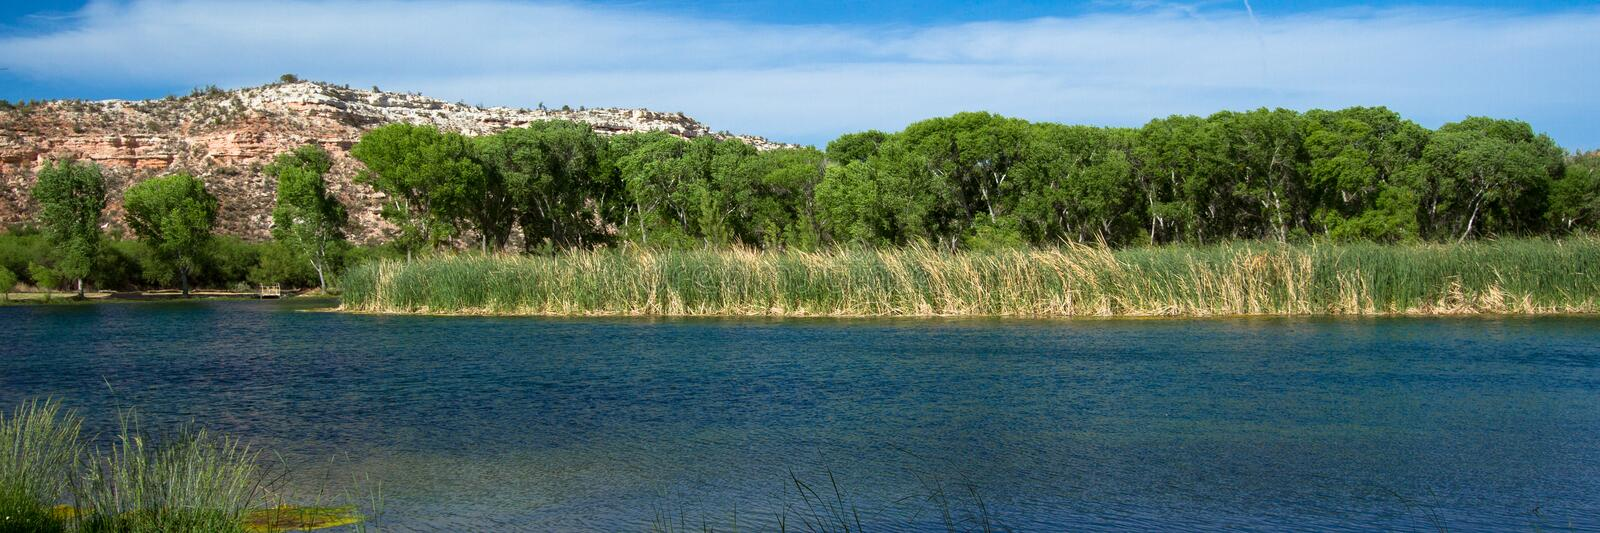 Water from the Verde River fills the lagoon, or marsh, at Dead Horse Ranch State Park near Cottonwood, Arizona. Panorama of a lagoon filled with water from the royalty free stock image